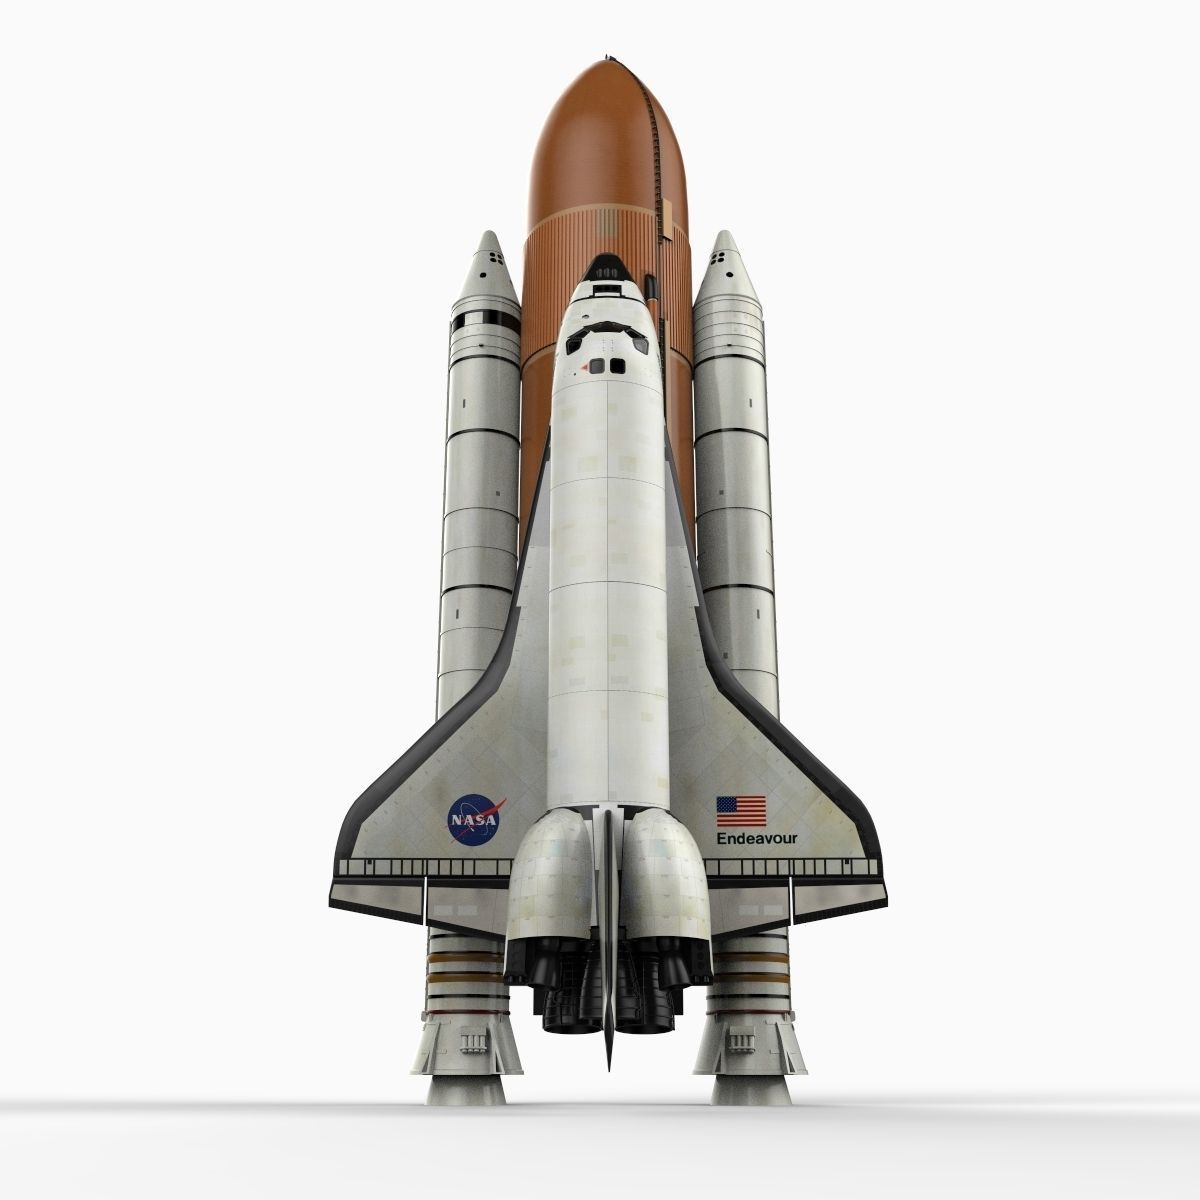 Space shuttle with delivery system 3d model max obj 3ds c4d lwo lw lws ma mb - Small space shuttle model ...